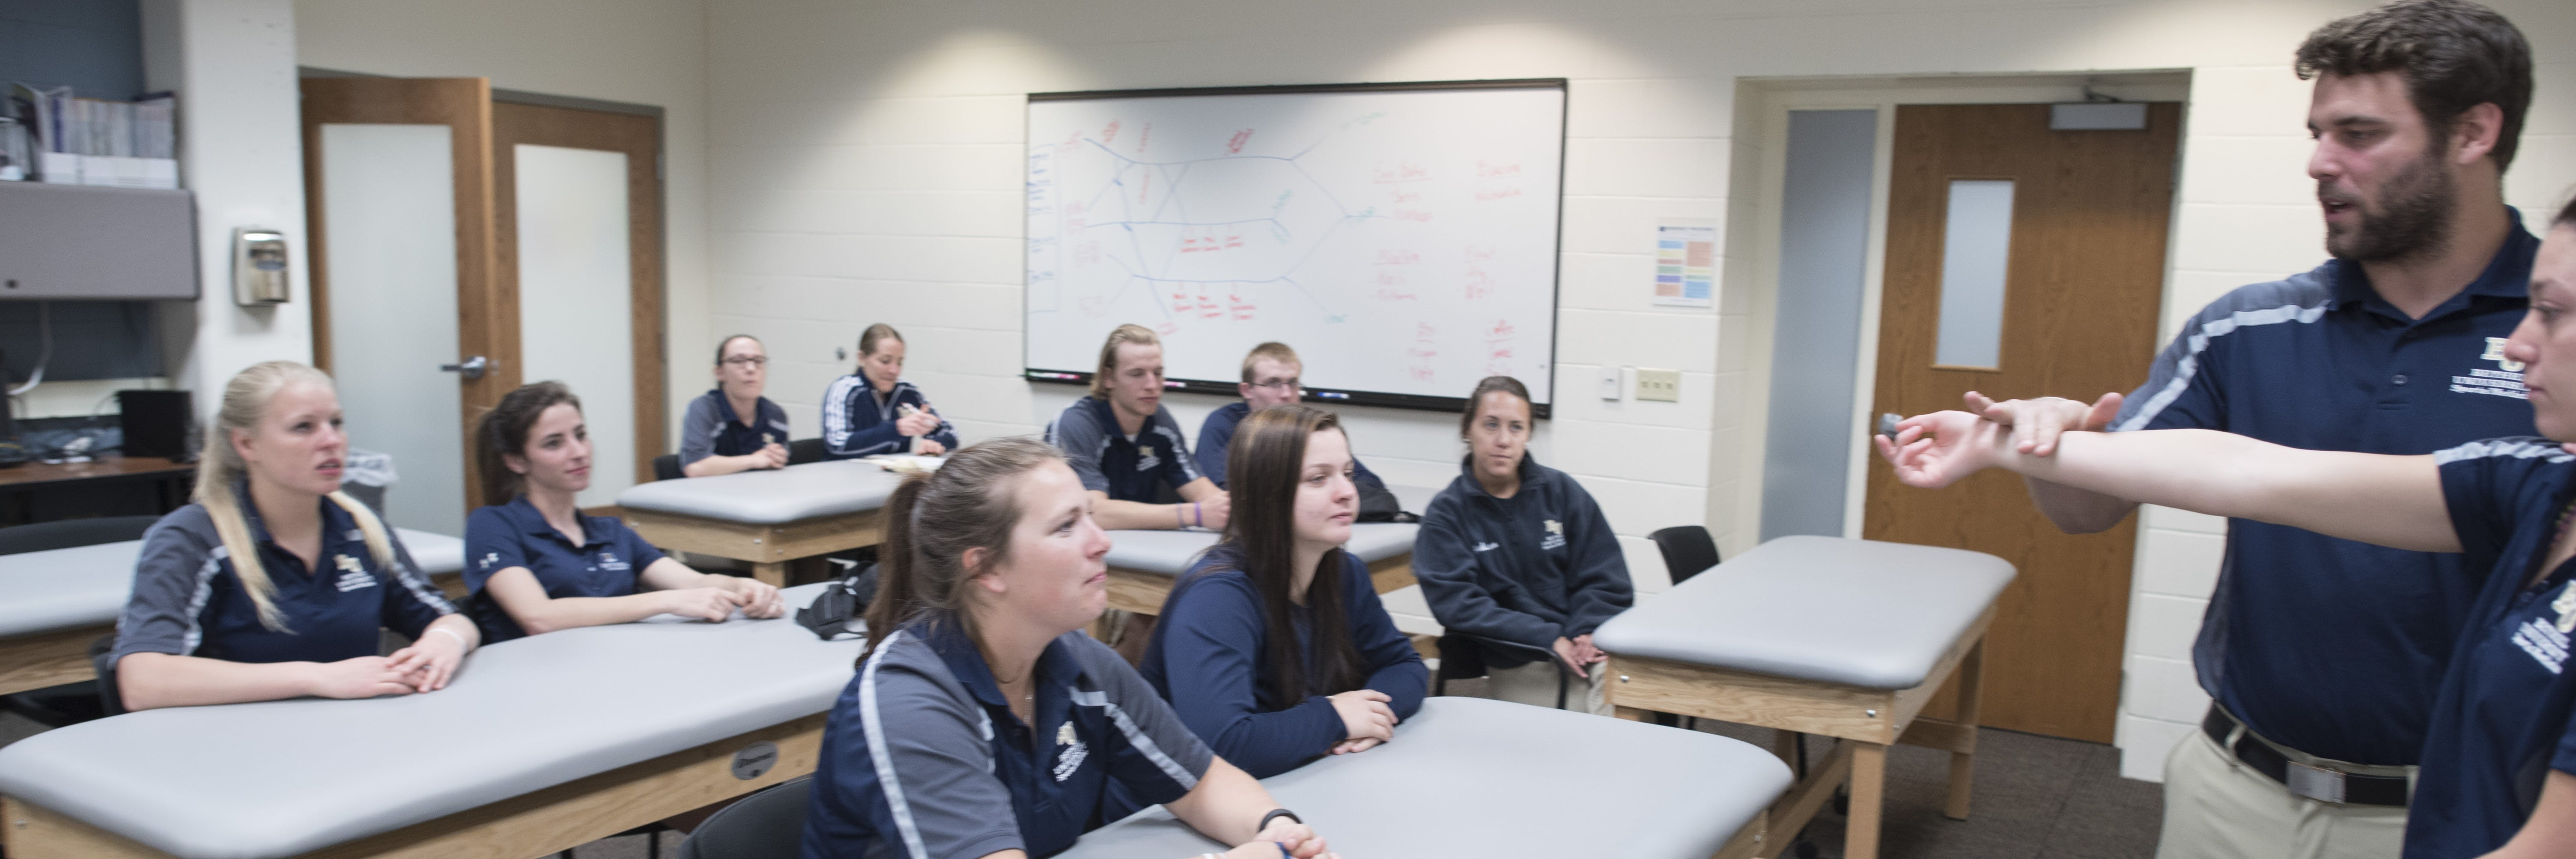 Athletic training program students in classroom